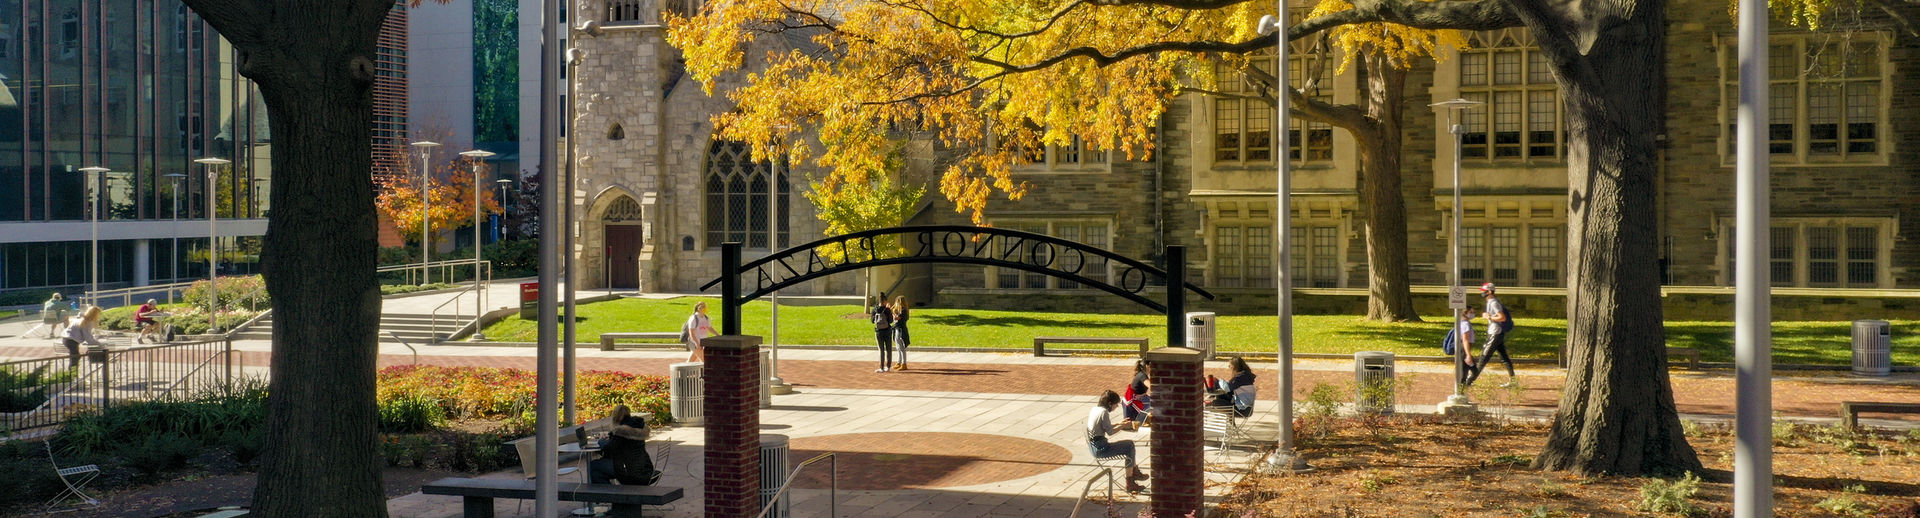 Students gathered in O'Connor Plaza on a sunny fall day